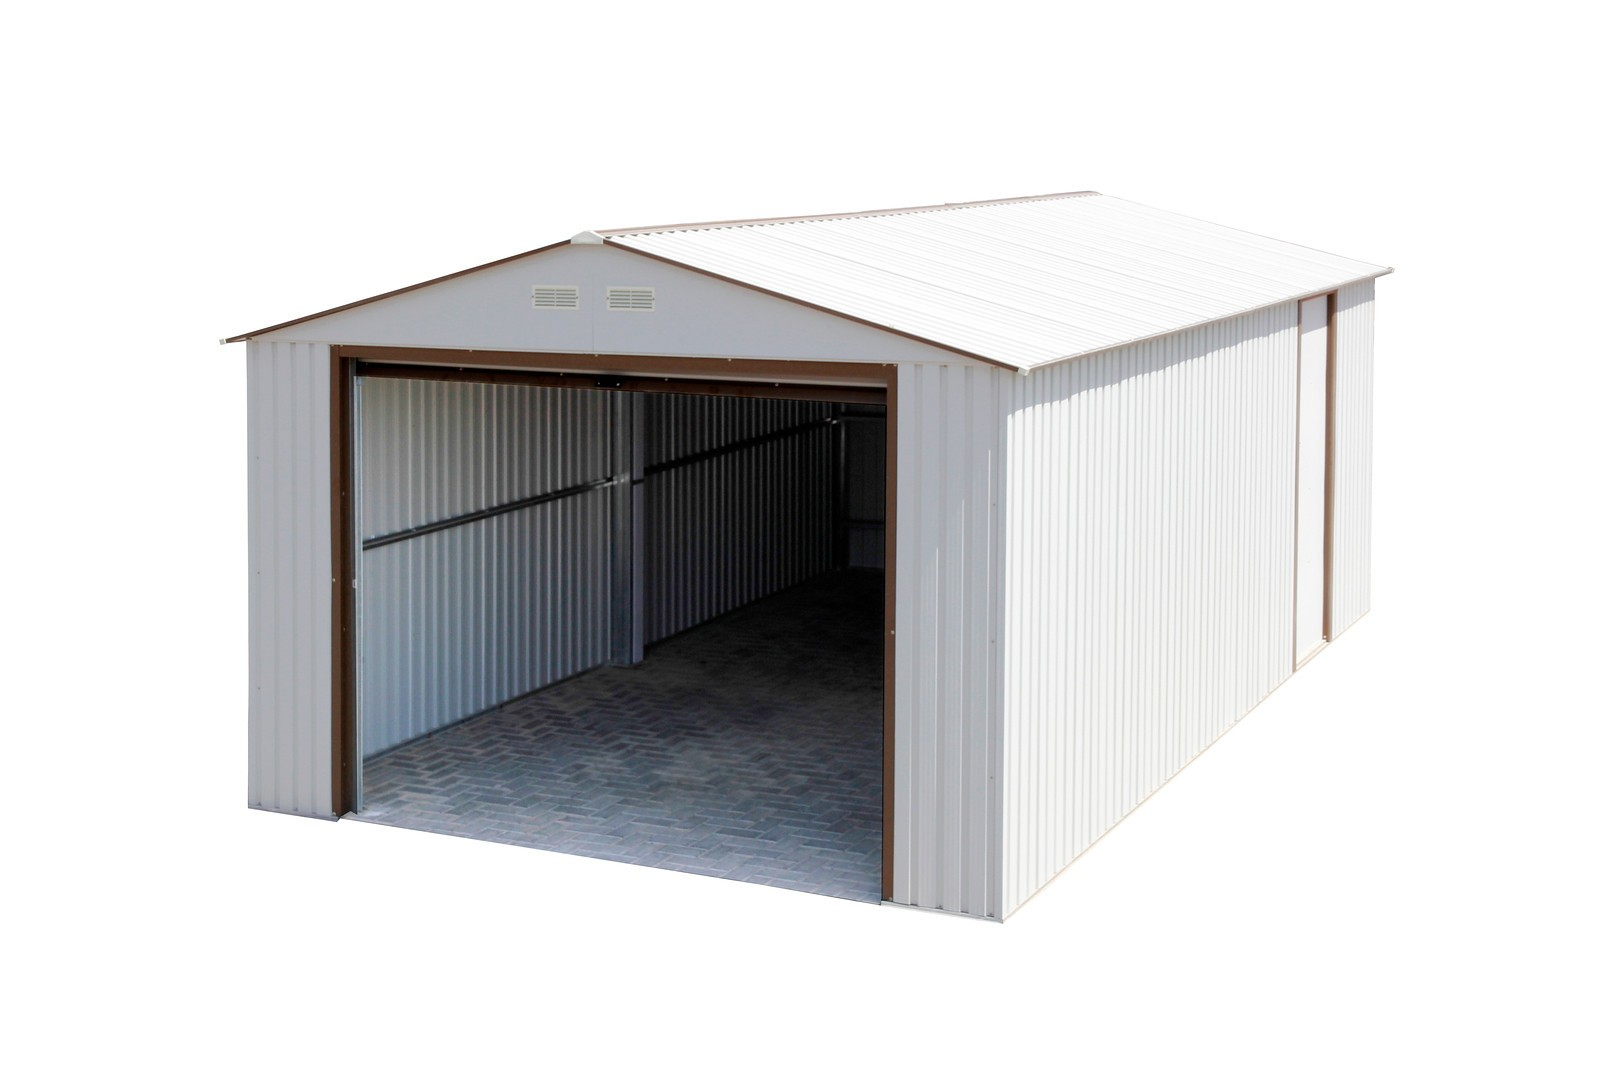 Duramax 50931 Metal Garage u2013 12u0027x20u0027 Metal Storage Shed u2013 Off White with Brown Trim  sc 1 st  Duramax Sheds : 12x20 storage shed  - Aquiesqueretaro.Com